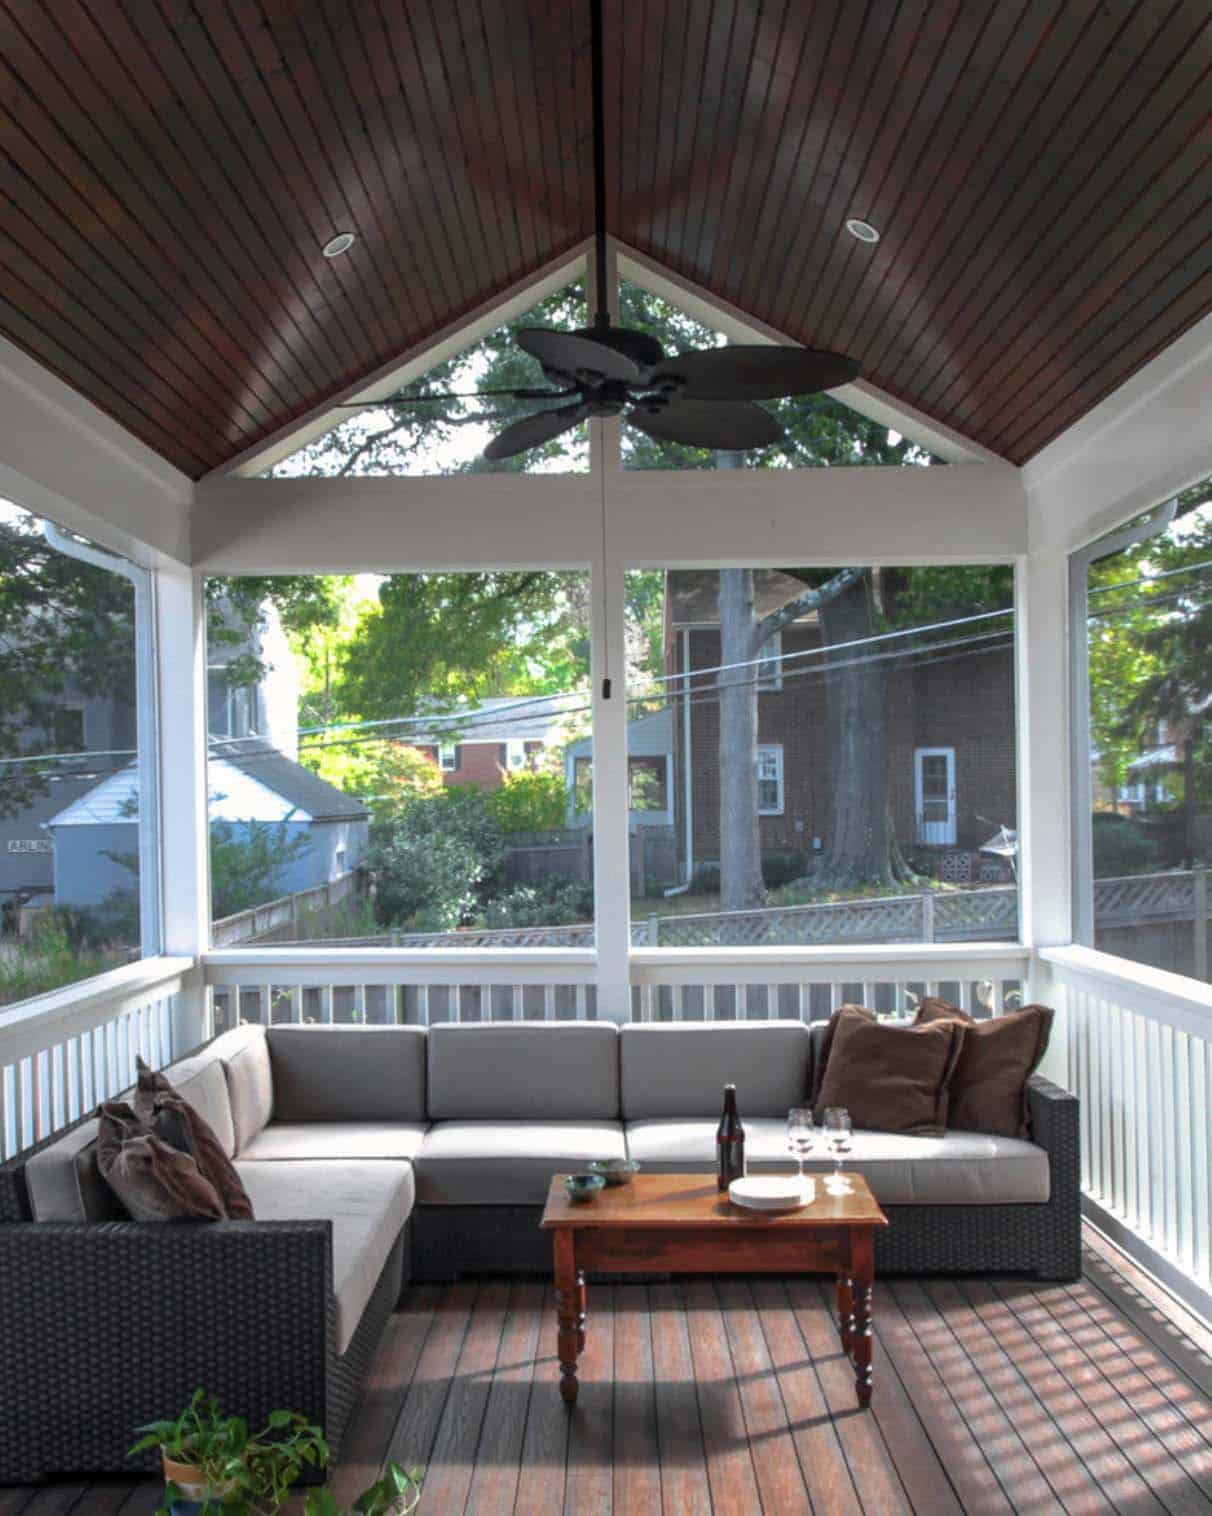 https://cdn.onekindesign.com/wp-content/uploads/2017/05/Screened-Porch-Design-Ideas-24-1-Kindesign.jpg